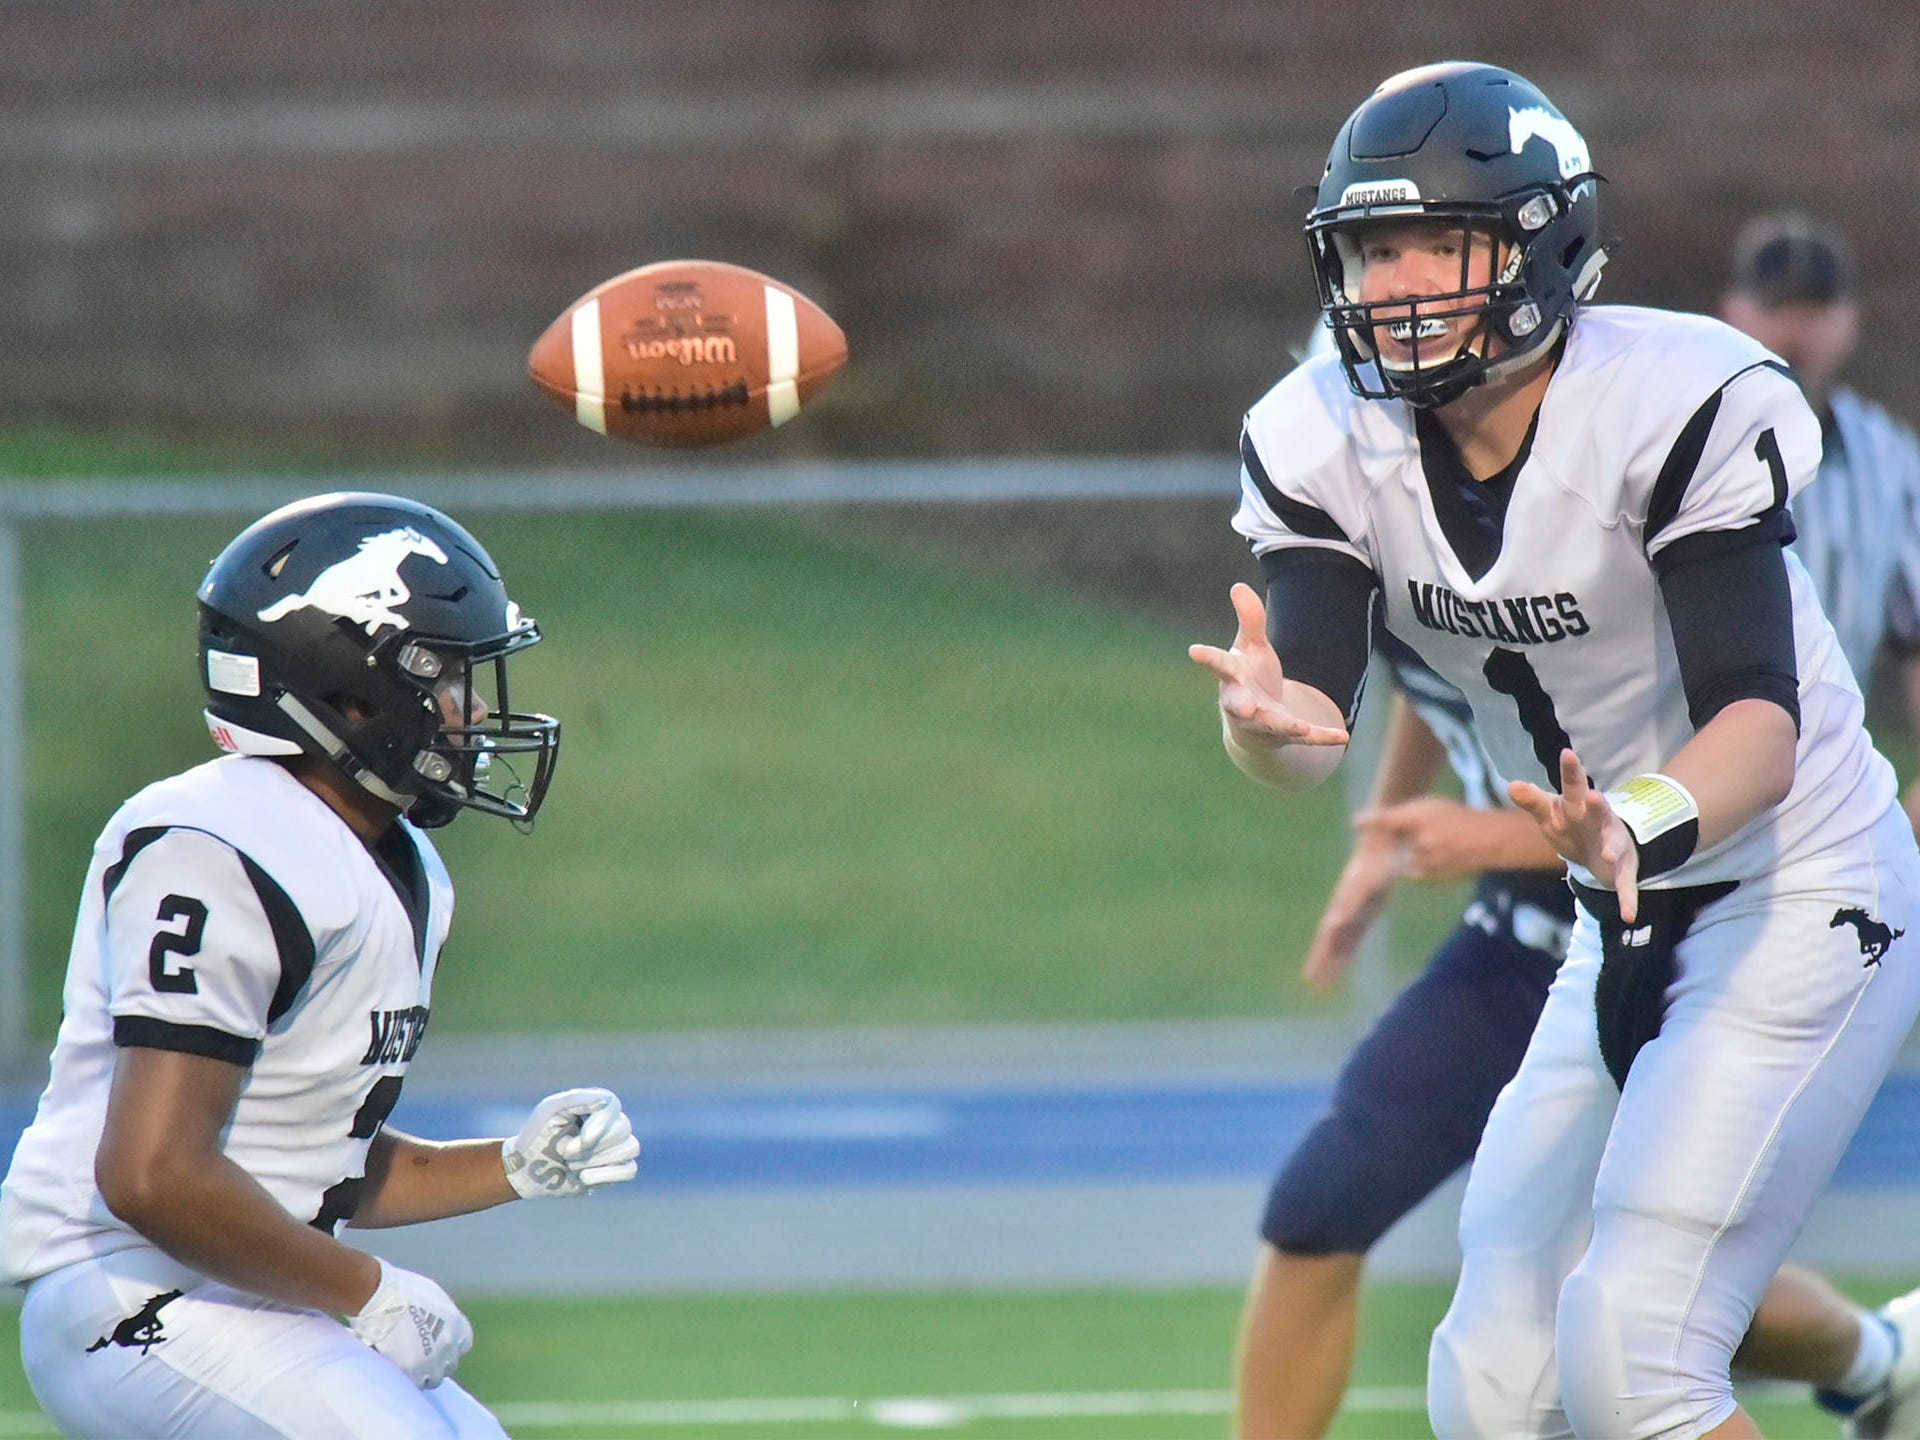 South Western quarterback Derek Huff pitches the ball to fullback Anthony Soriano. Chambersburg defeated South Western 51-26 in football on Friday, Aug. 31, 2018.